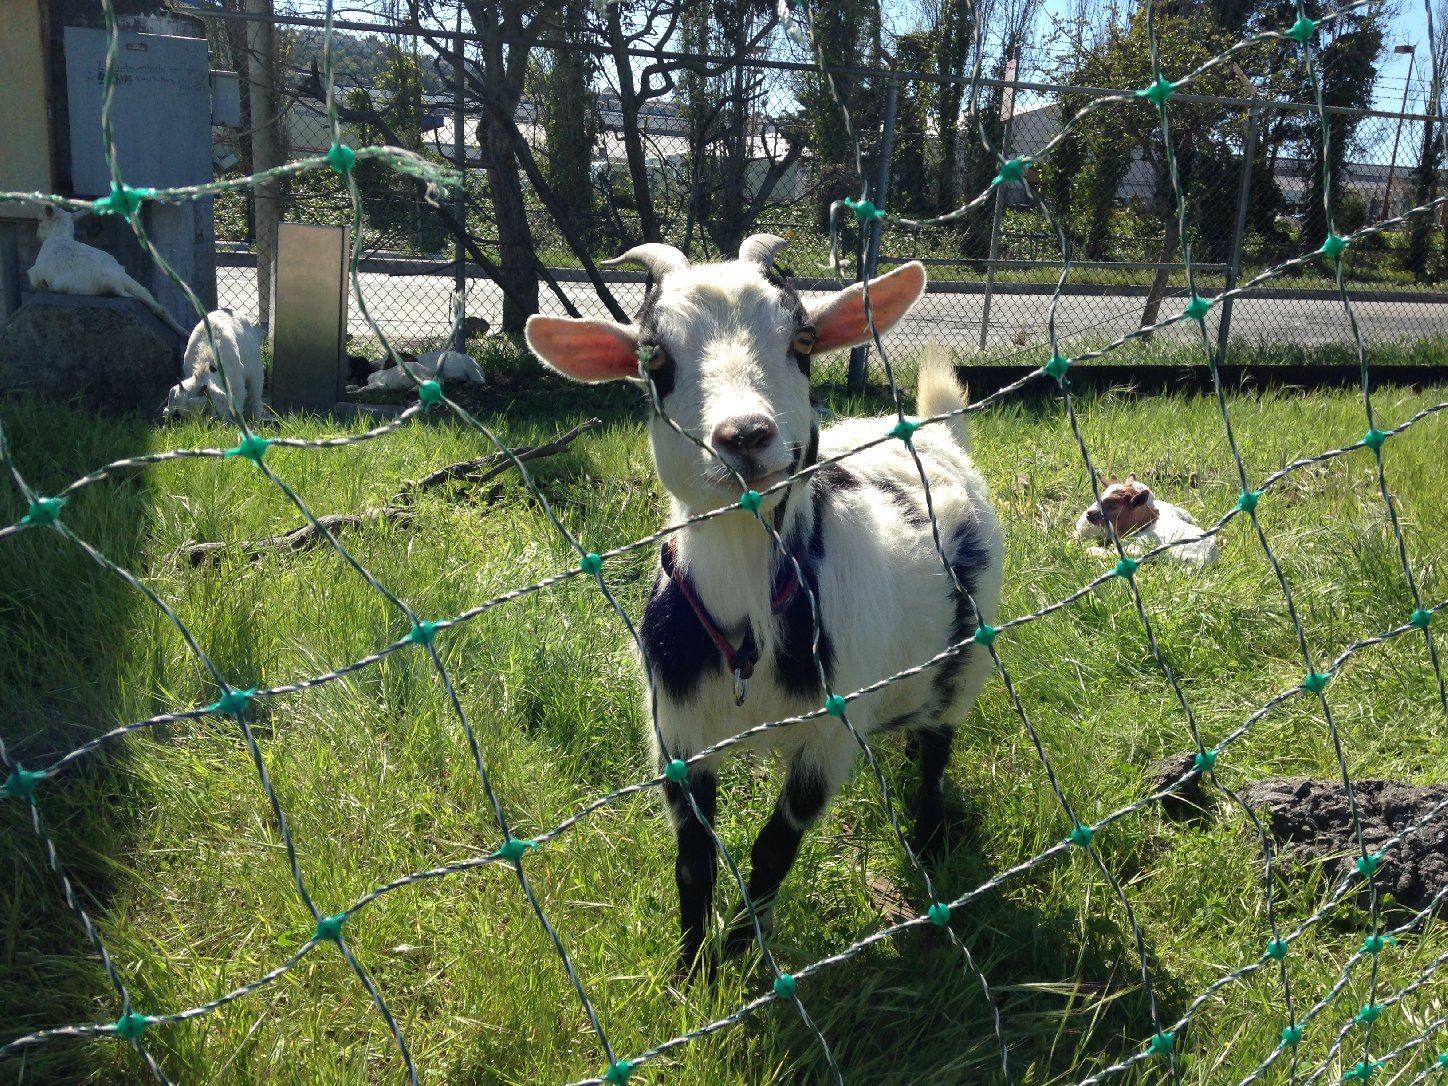 San Francisco-Based Landscaper Adds Baby Goats to its Urban Herd